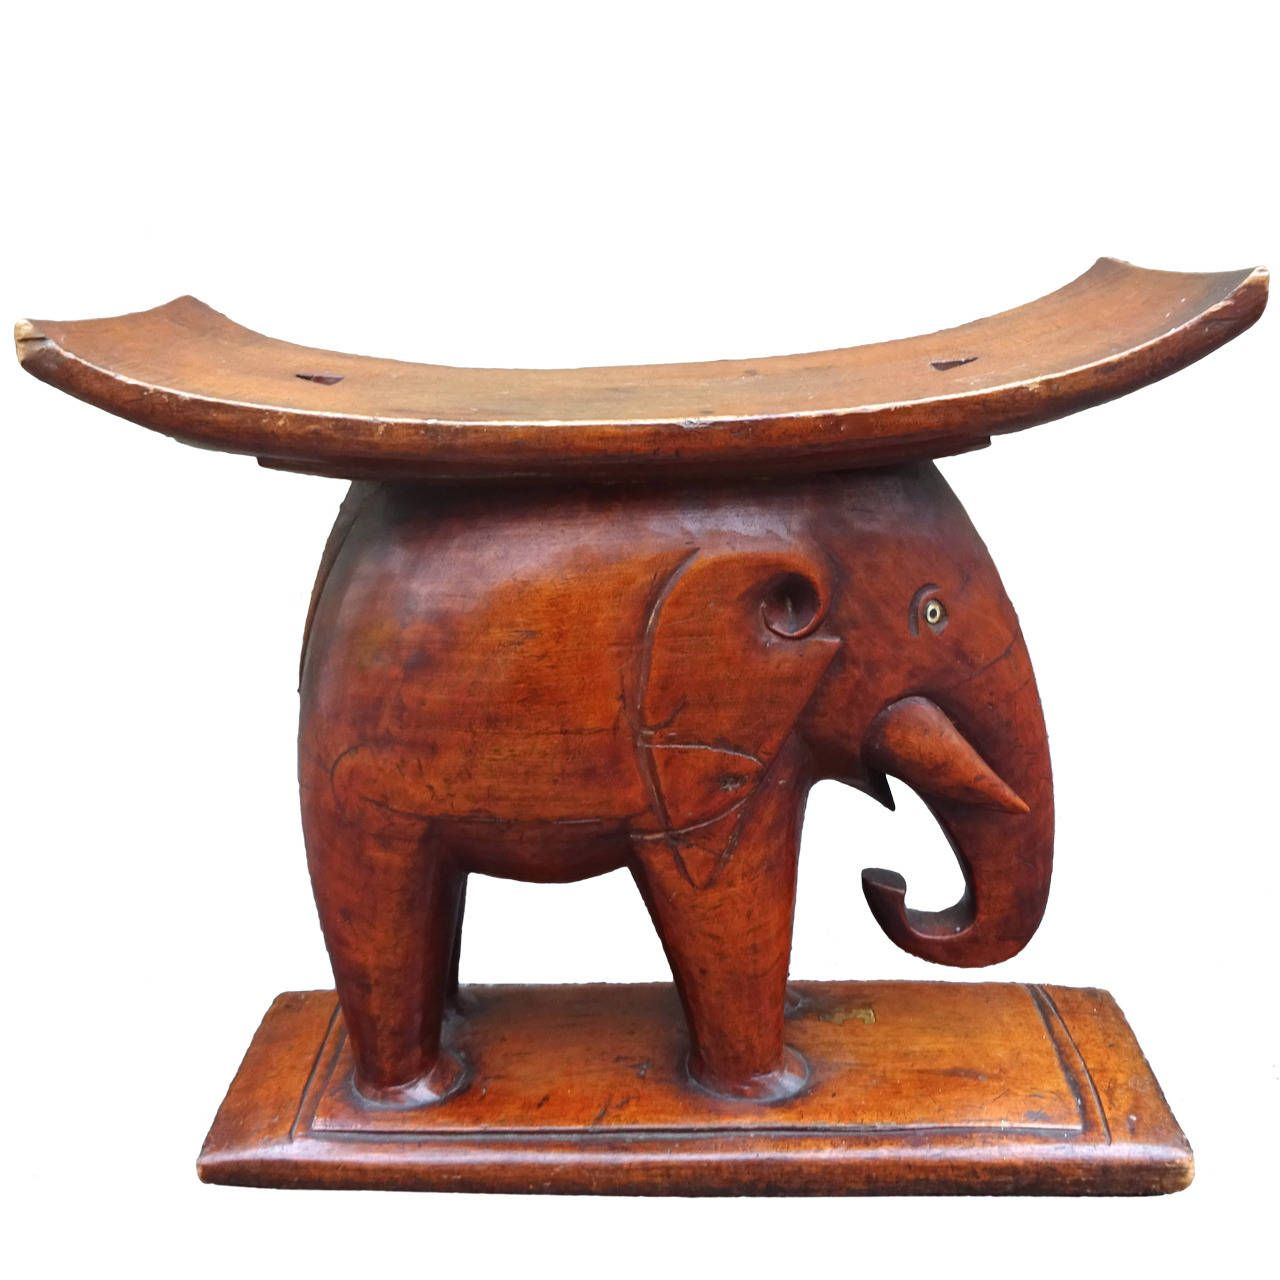 Fabulous 1920s African Carved Mahogany Elephant Stool From A